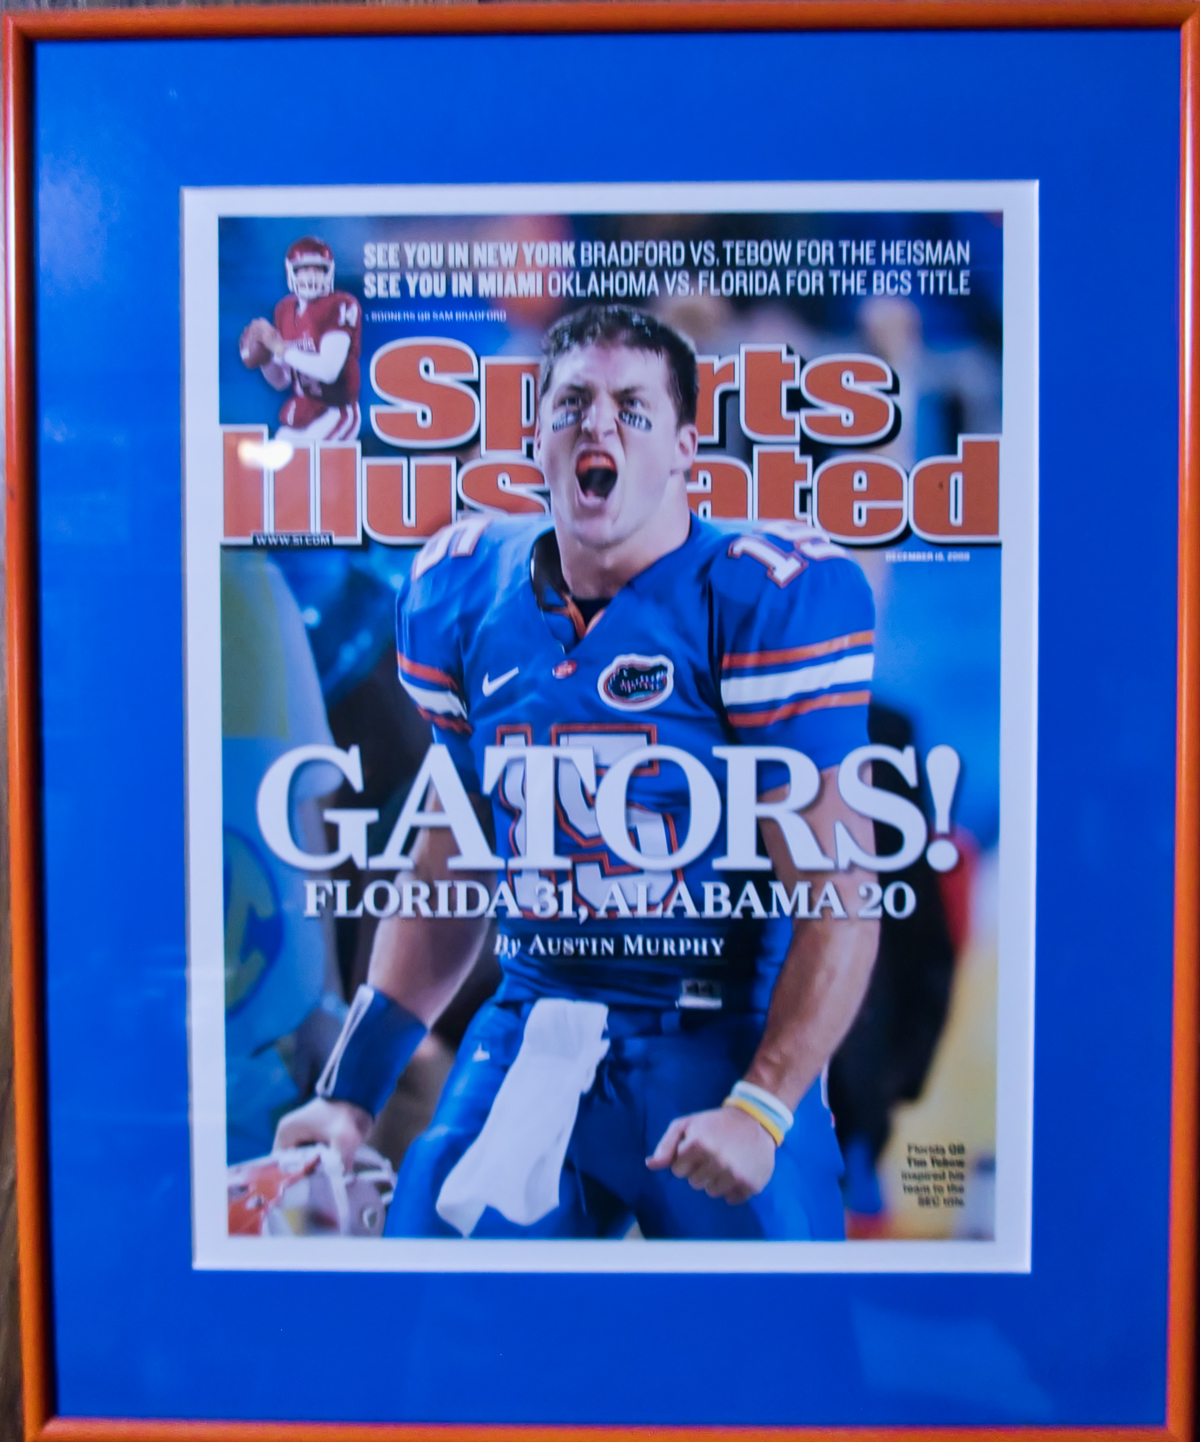 Tim Tebow and the Gators Beat Bama in the 2008 SEC Championship Game